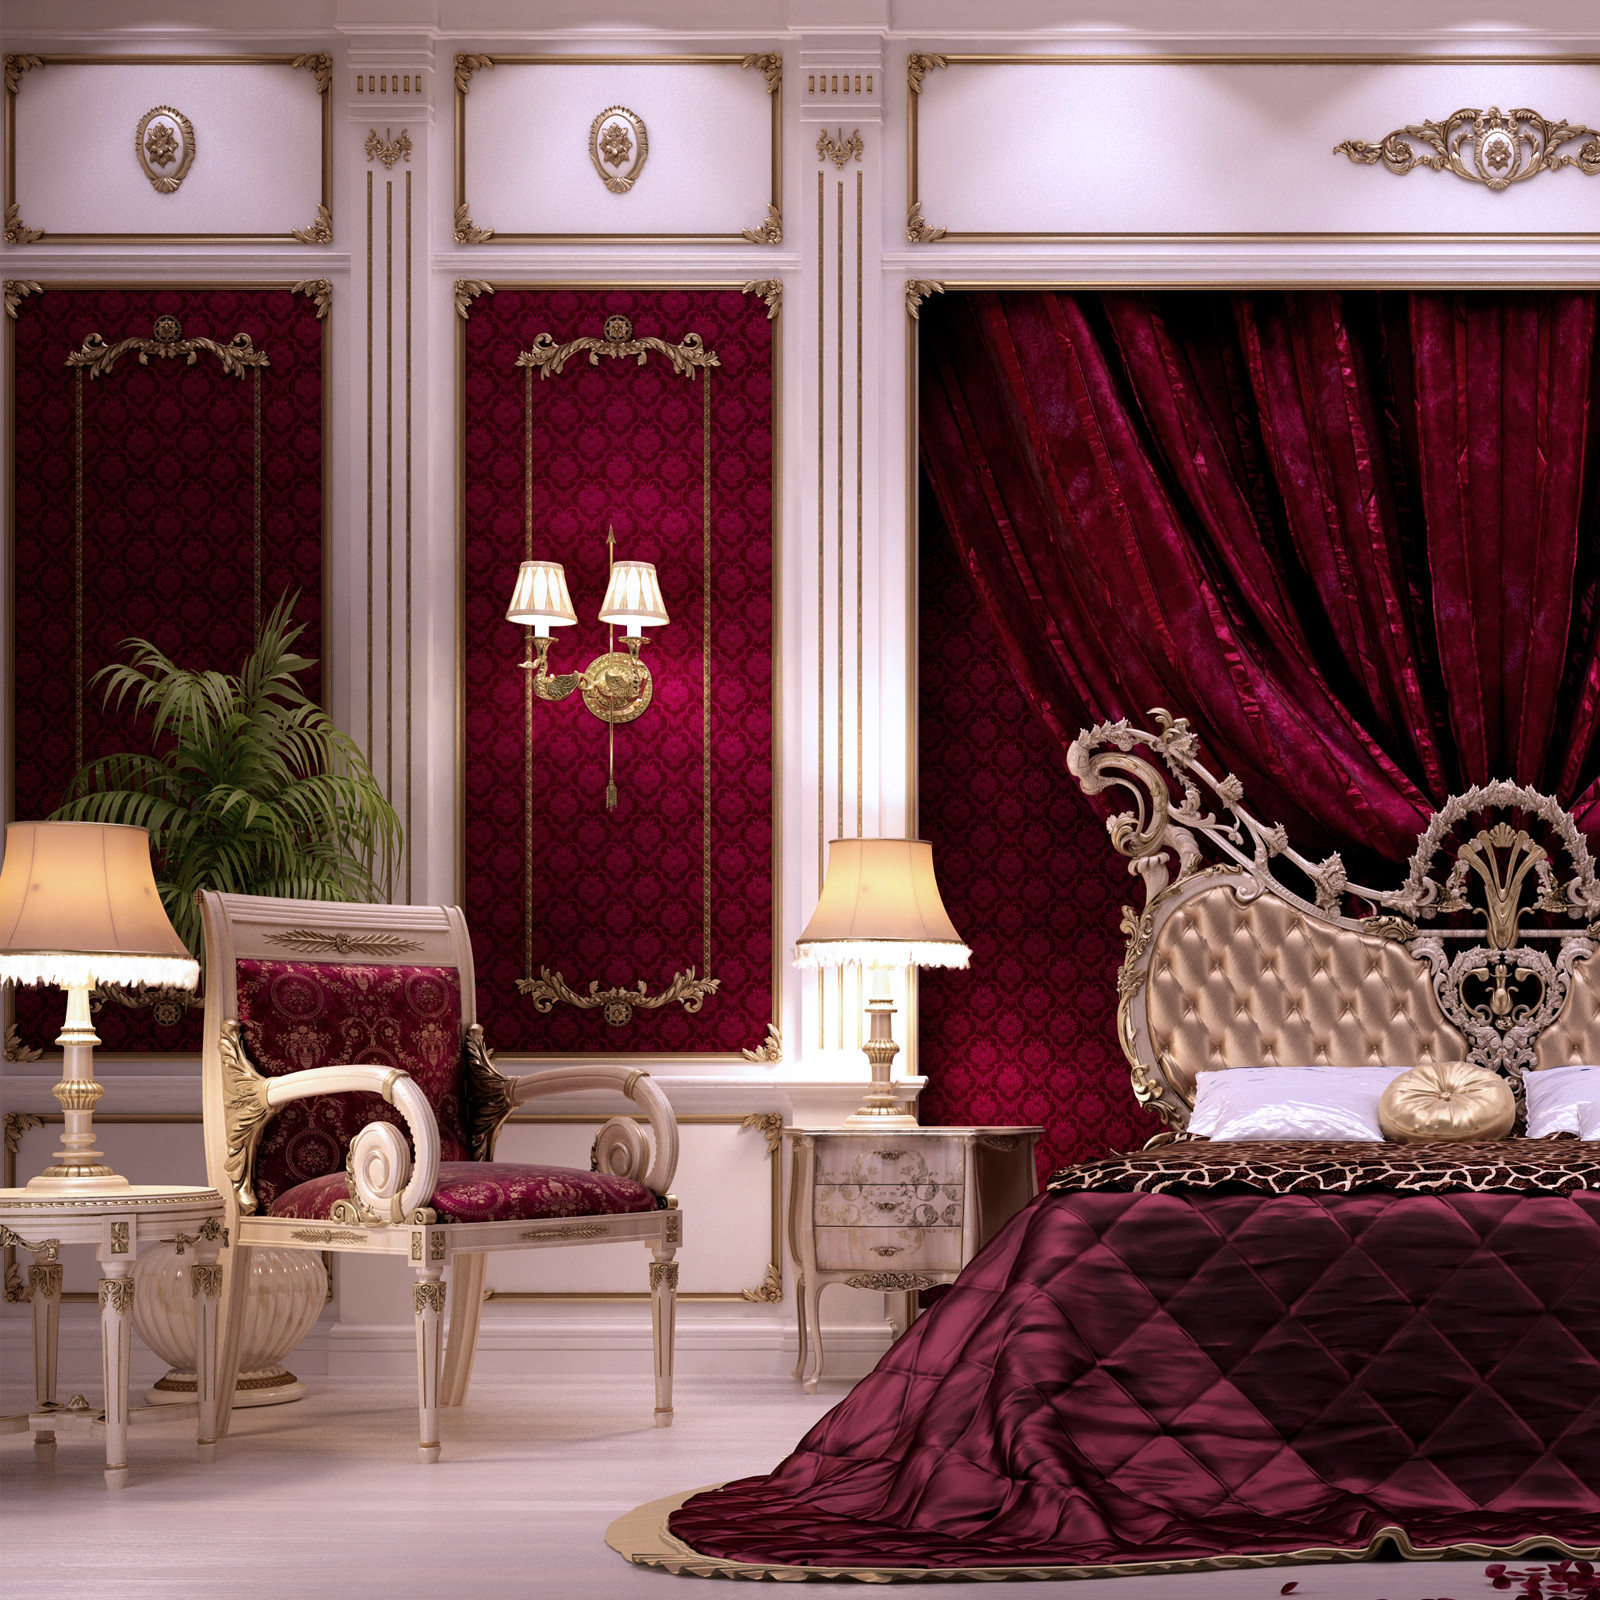 Eldora Royal Suite_VN.jpg